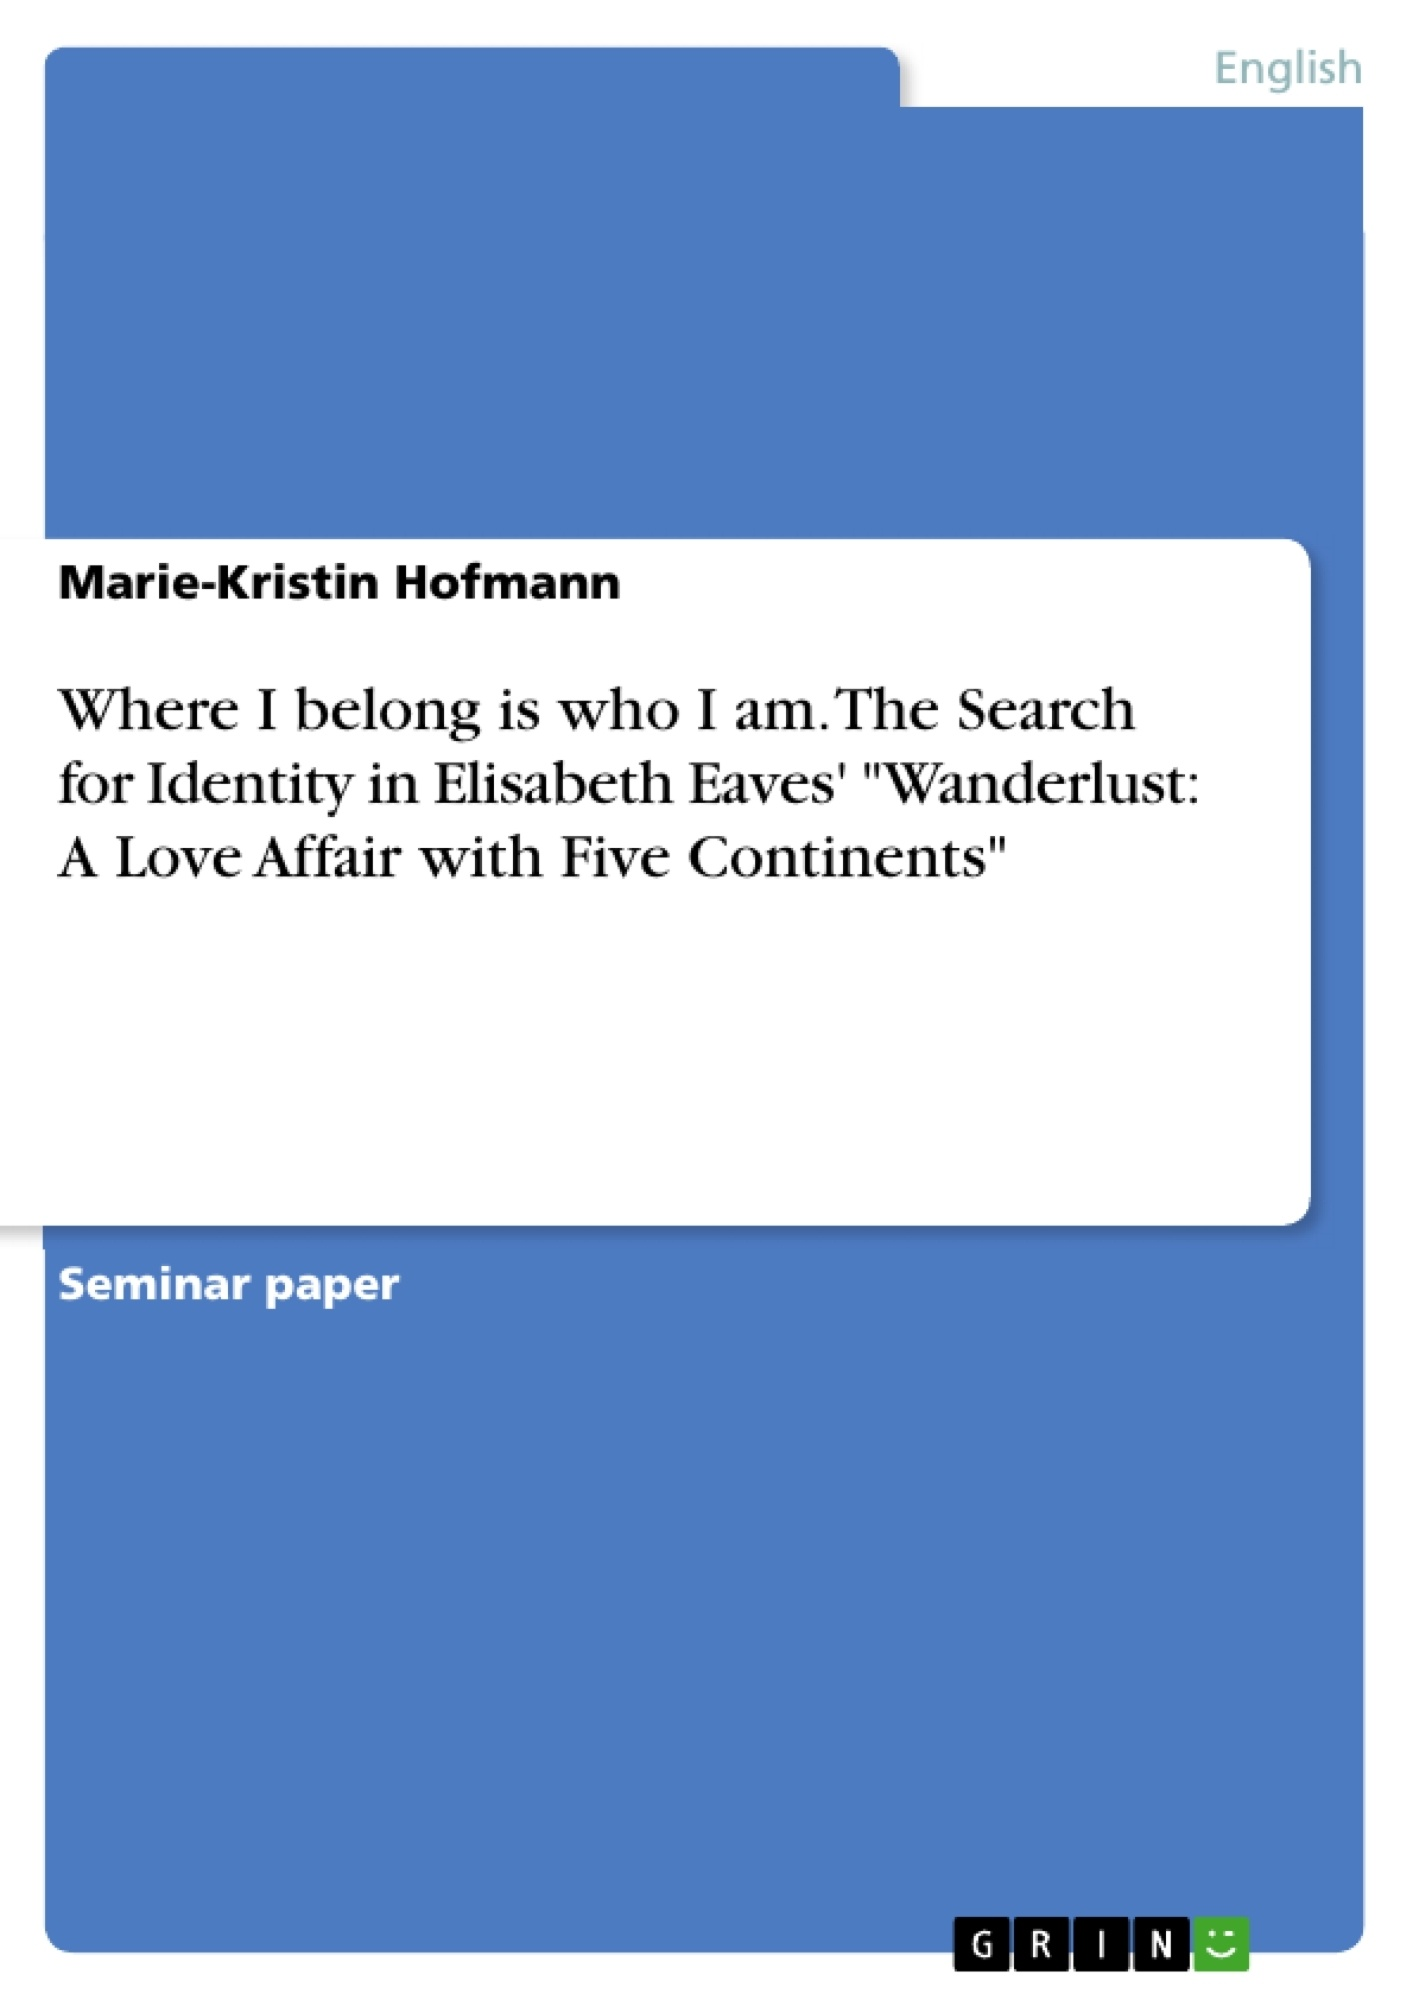 """Title: Where I belong is who I am. The Search for Identity in Elisabeth Eaves' """"Wanderlust: A Love Affair with Five Continents"""""""